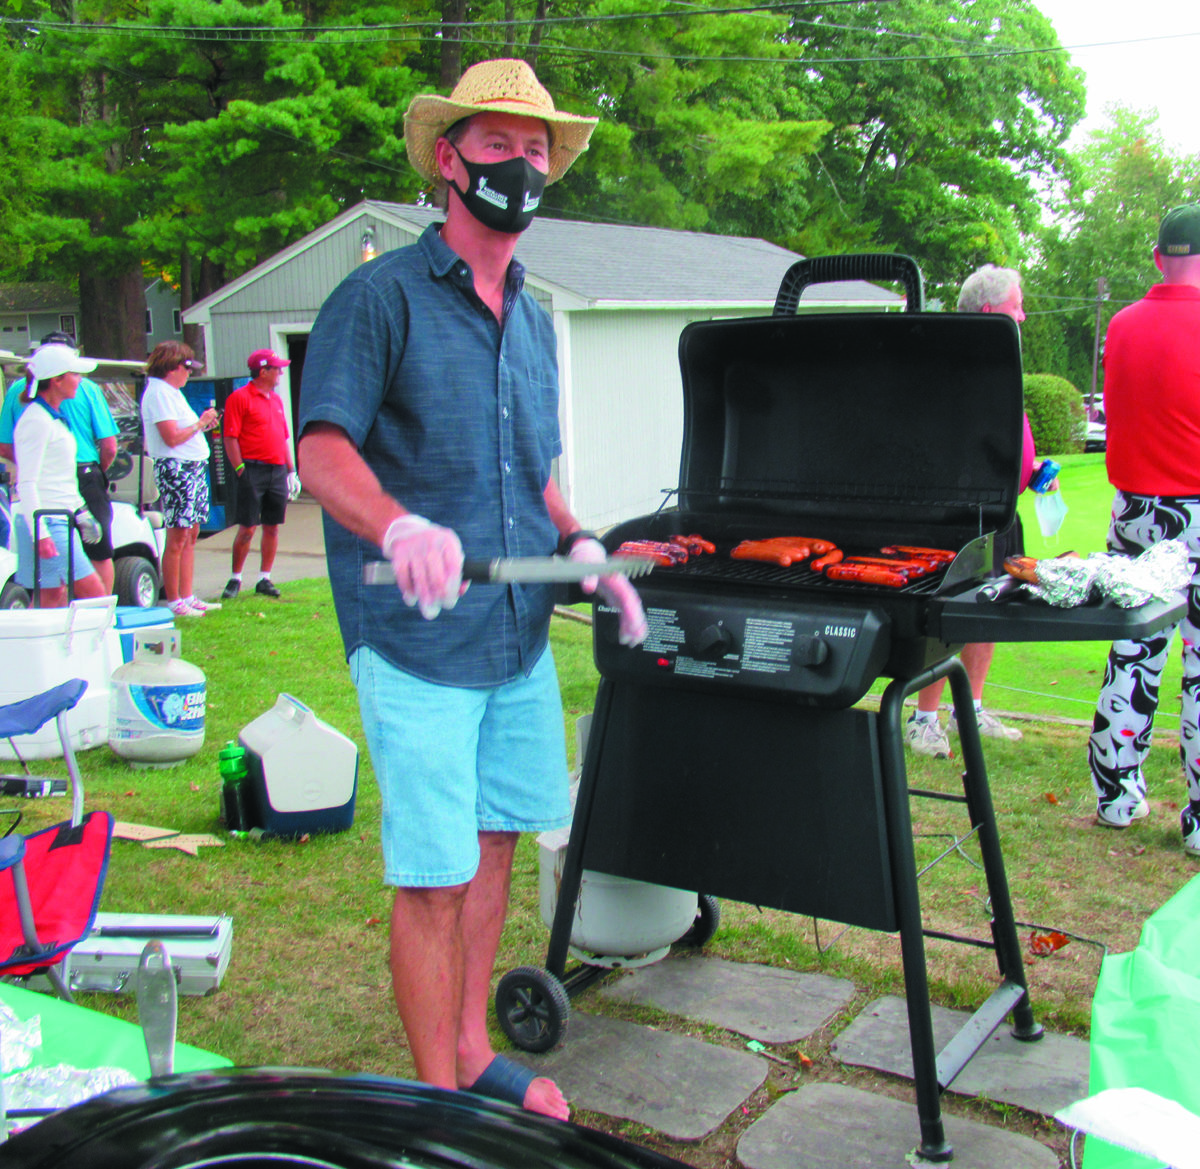 SPECIAL SUPPORTER: Todd Curley, who JMCE Co-Ed Memorial Golf Tournament officials praised for always supporting the event, did everything form cook char-broiled hot dogs and prepare homemade meatball and sausage and pepper sandwiches Sunday's record-setting golf tourney.